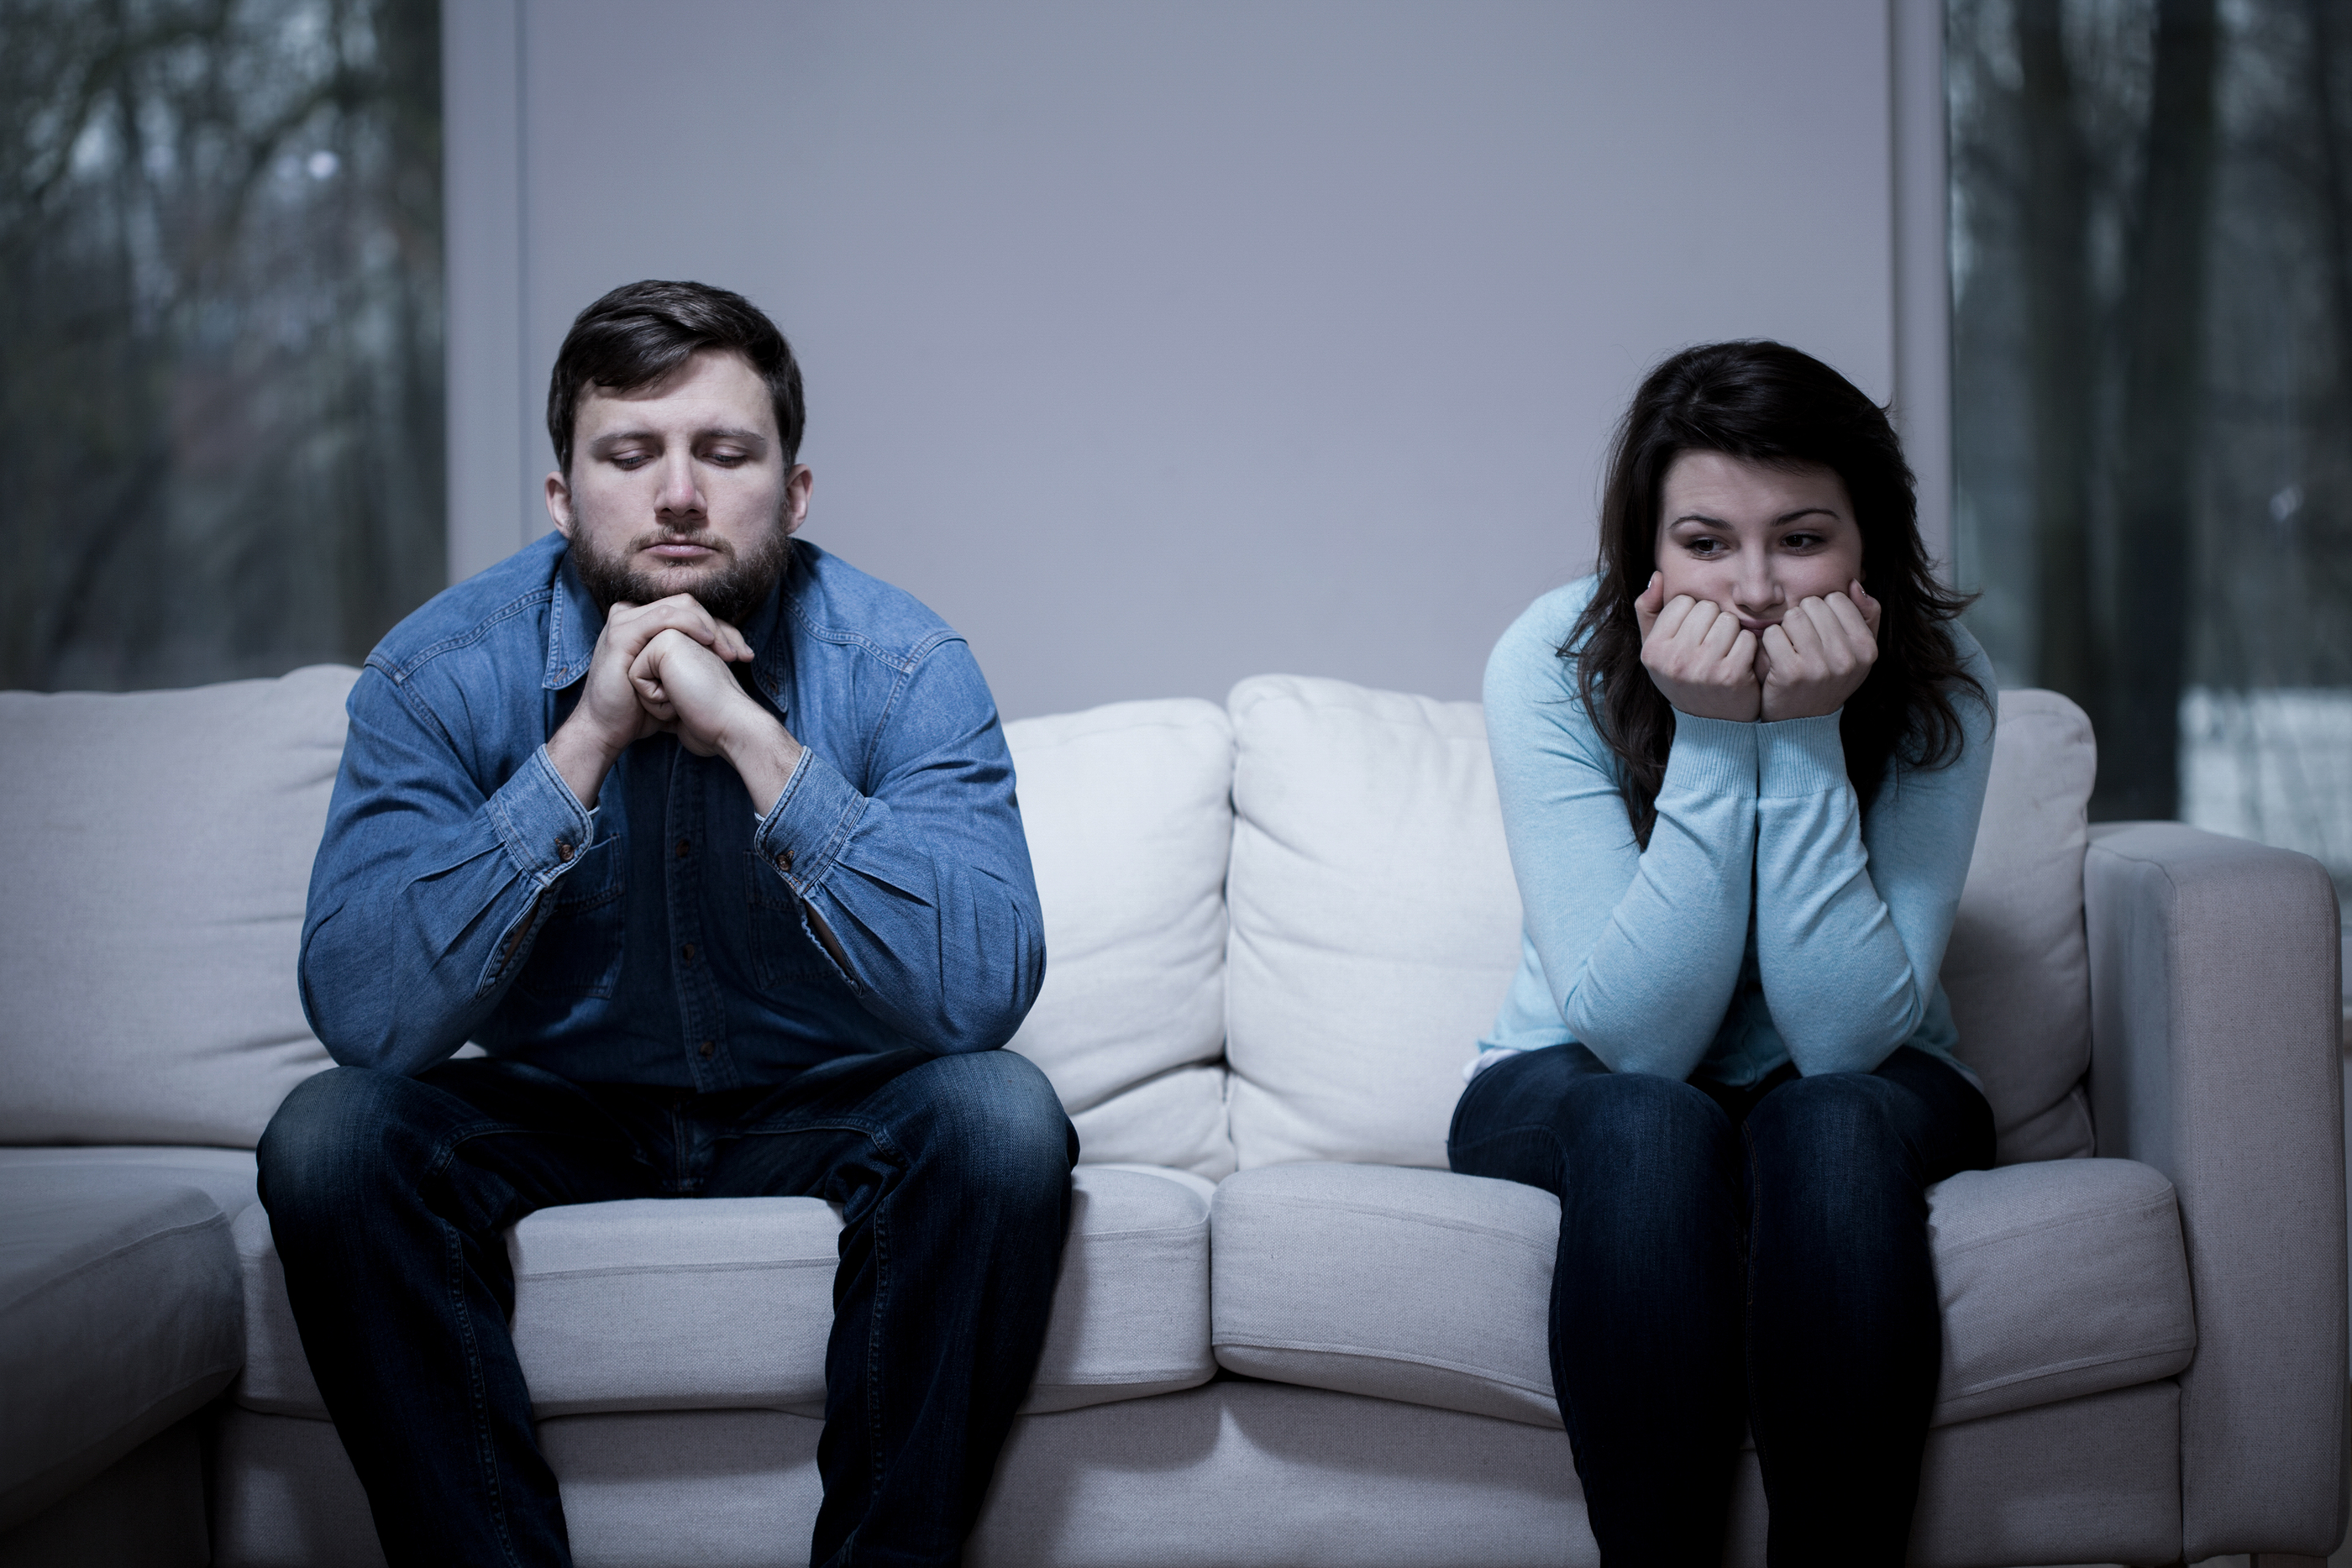 3 Warning Signs You Have an Unhealthy Attachment